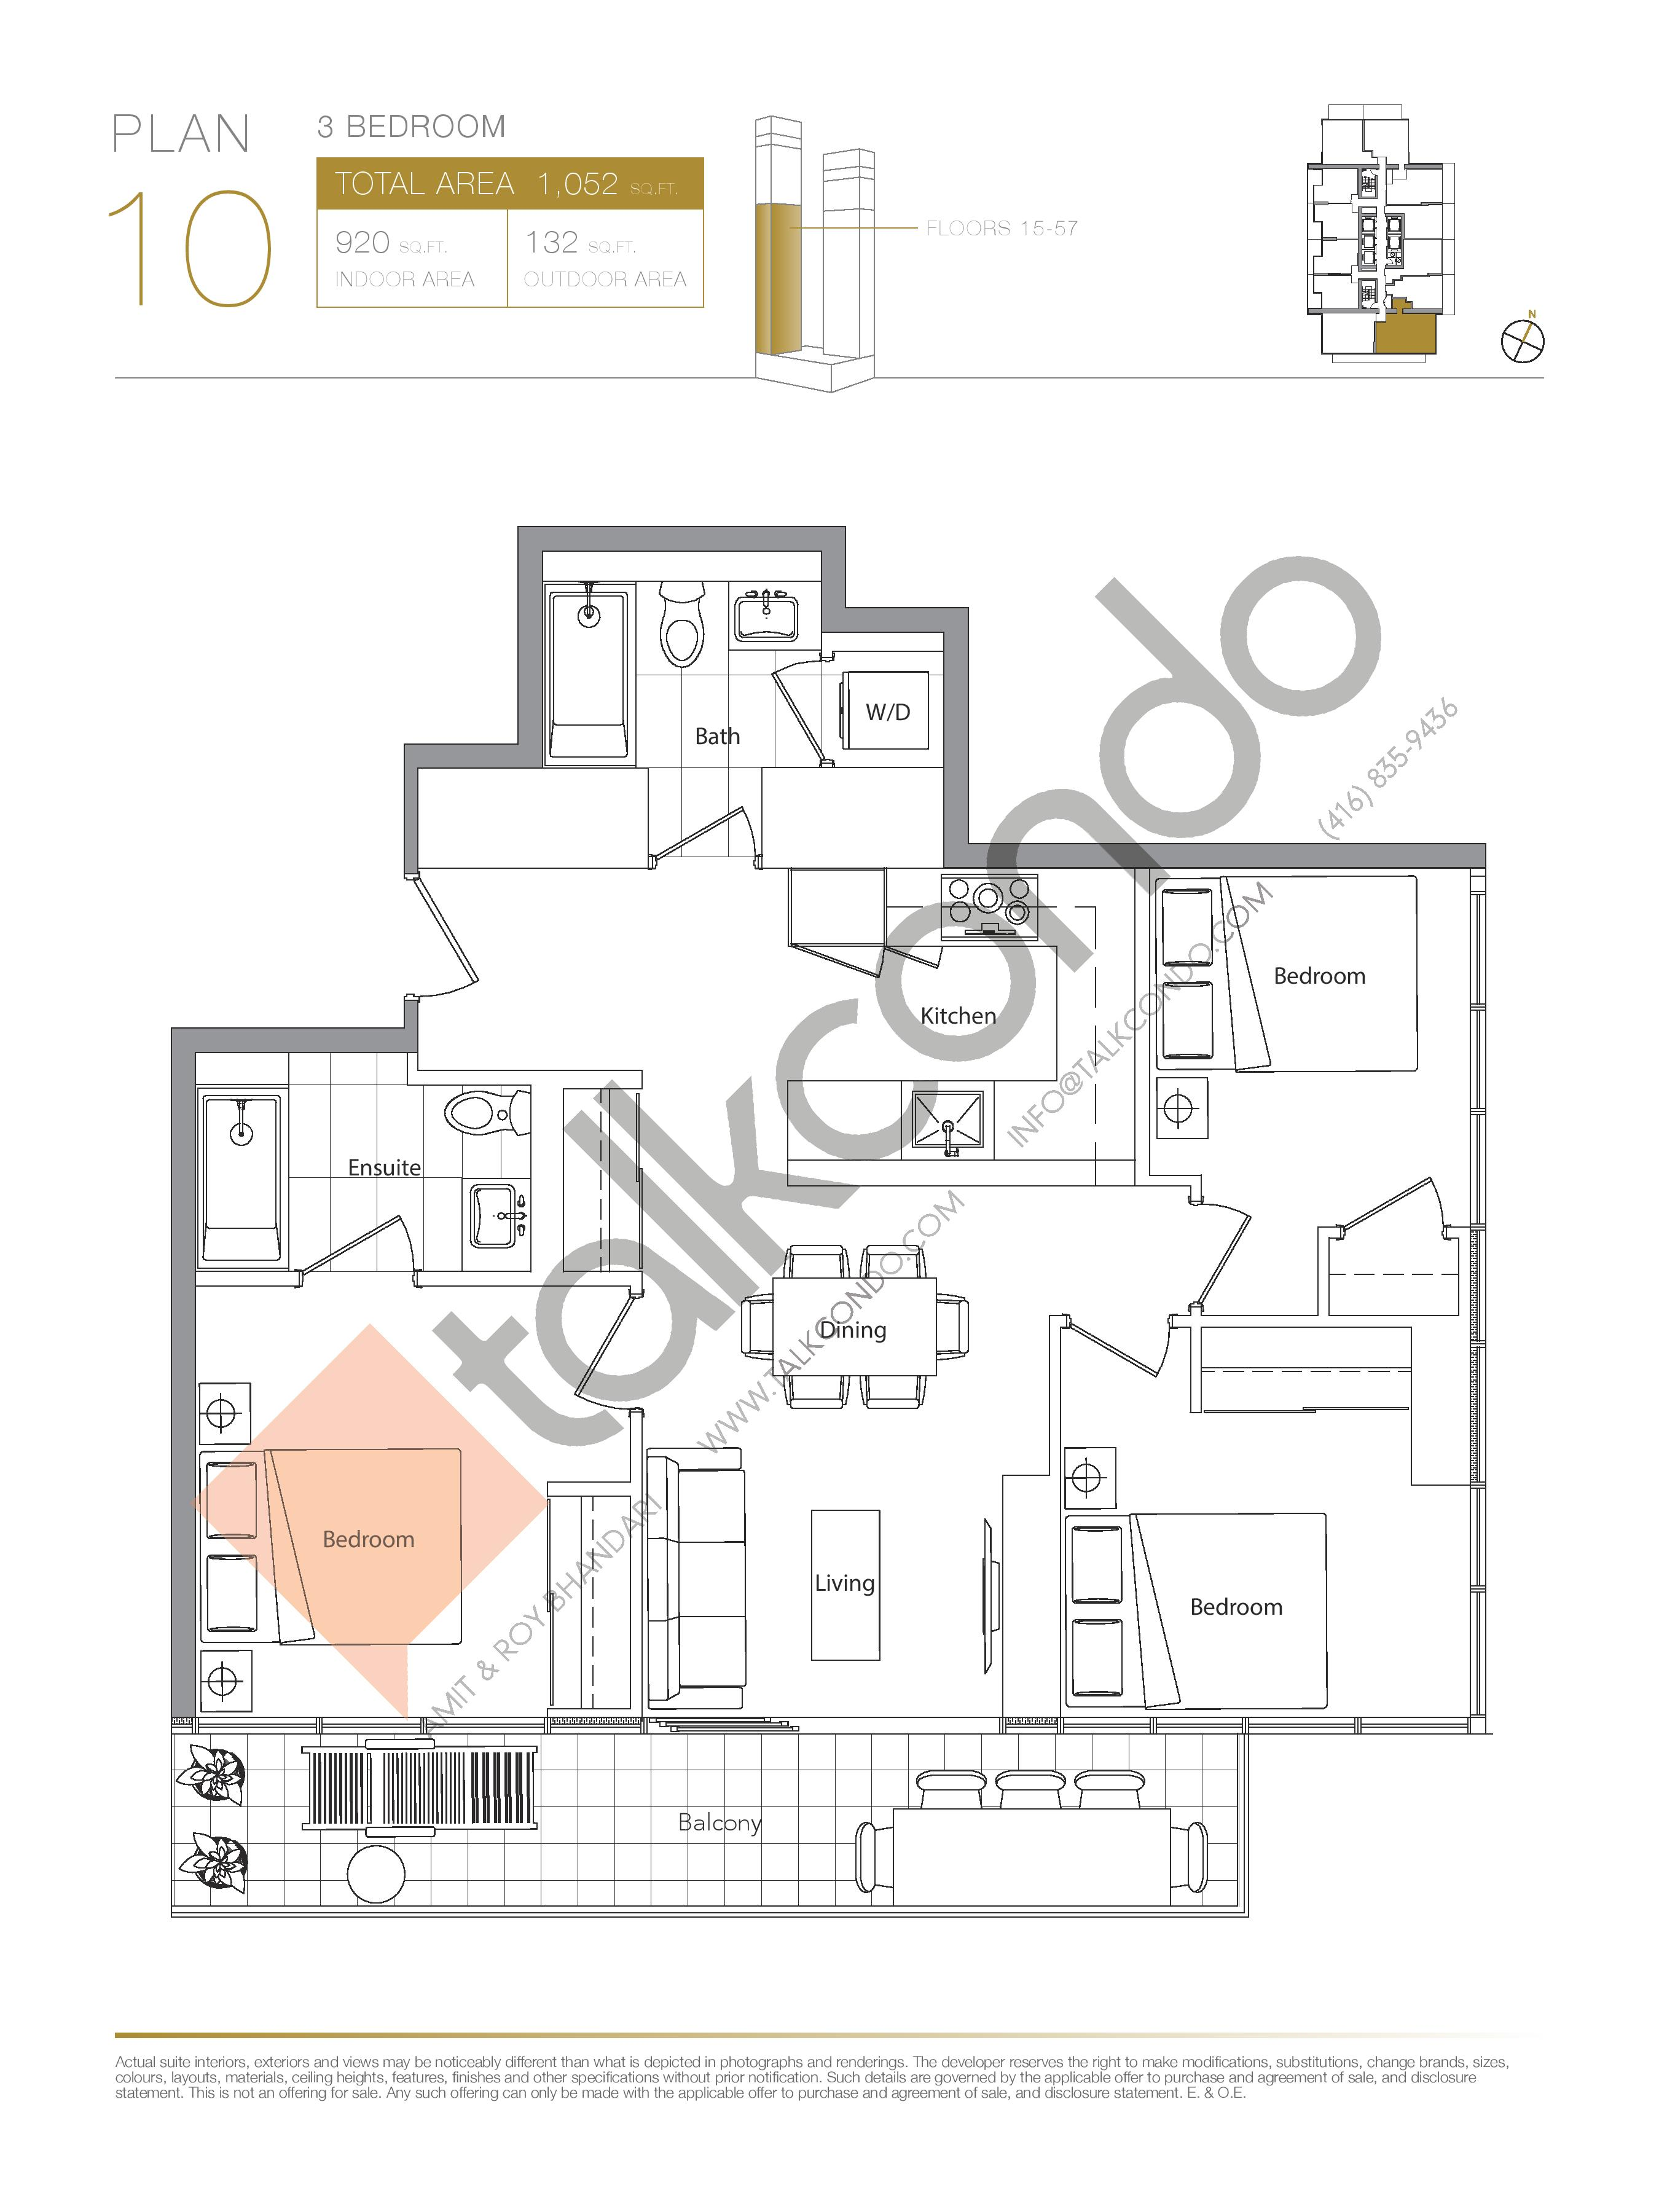 Plan 10 (New Release) Lower Floor Plan at Concord Canada House Condos - 920 sq.ft